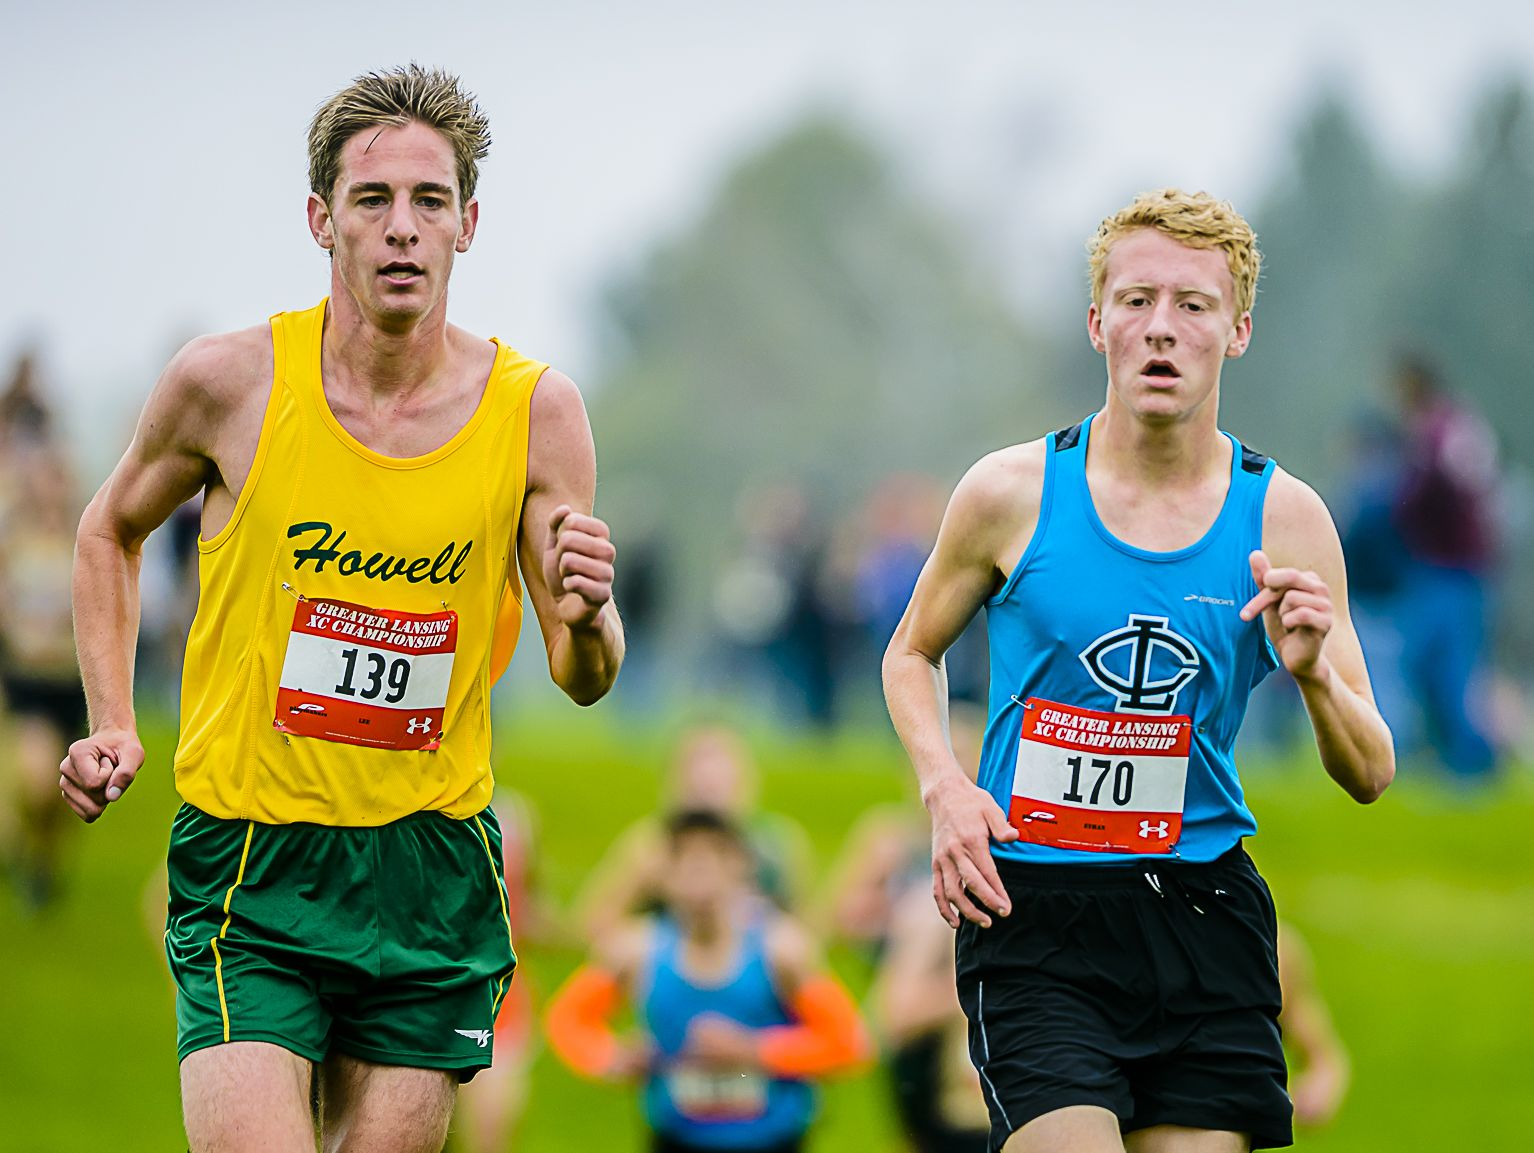 Lee Owens ,139, of Howell and Ethan Markey ,170, of Lansing Catholic pace each other during the Greater Lansing Cross Country championships Saturday October 15, 2016 at Ledge Meadows Golf Course in Grand Ledge. KEVIN W. FOWLER PHOTO